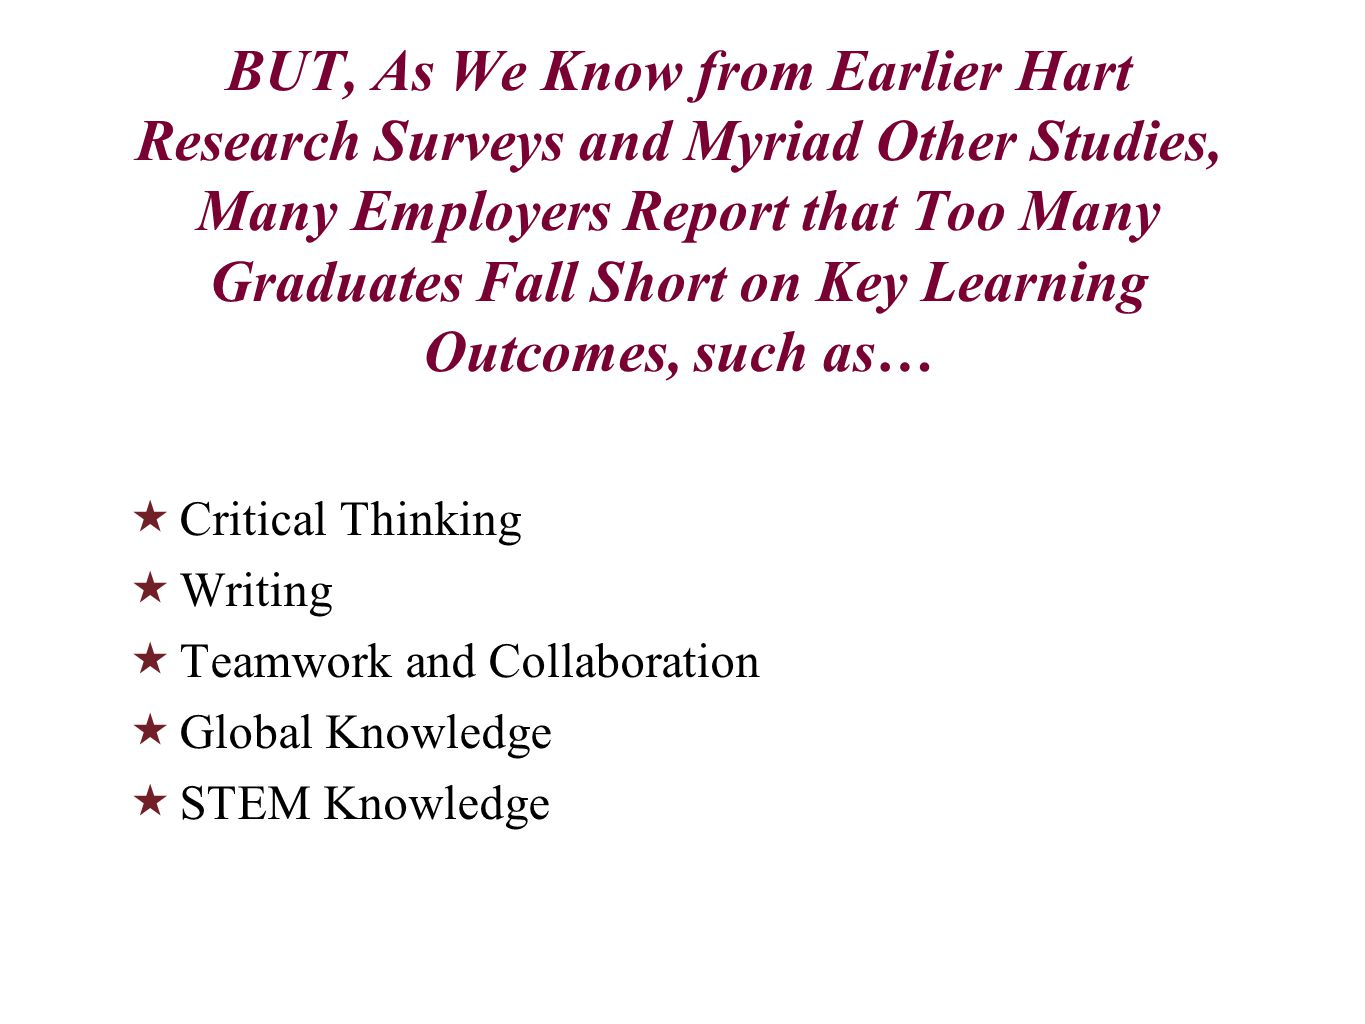 BUT, As We Know from Earlier Hart Research Surveys and Myriad Other Studies, Many Employers Report that Too Many Graduates Fall Short on Key Learning